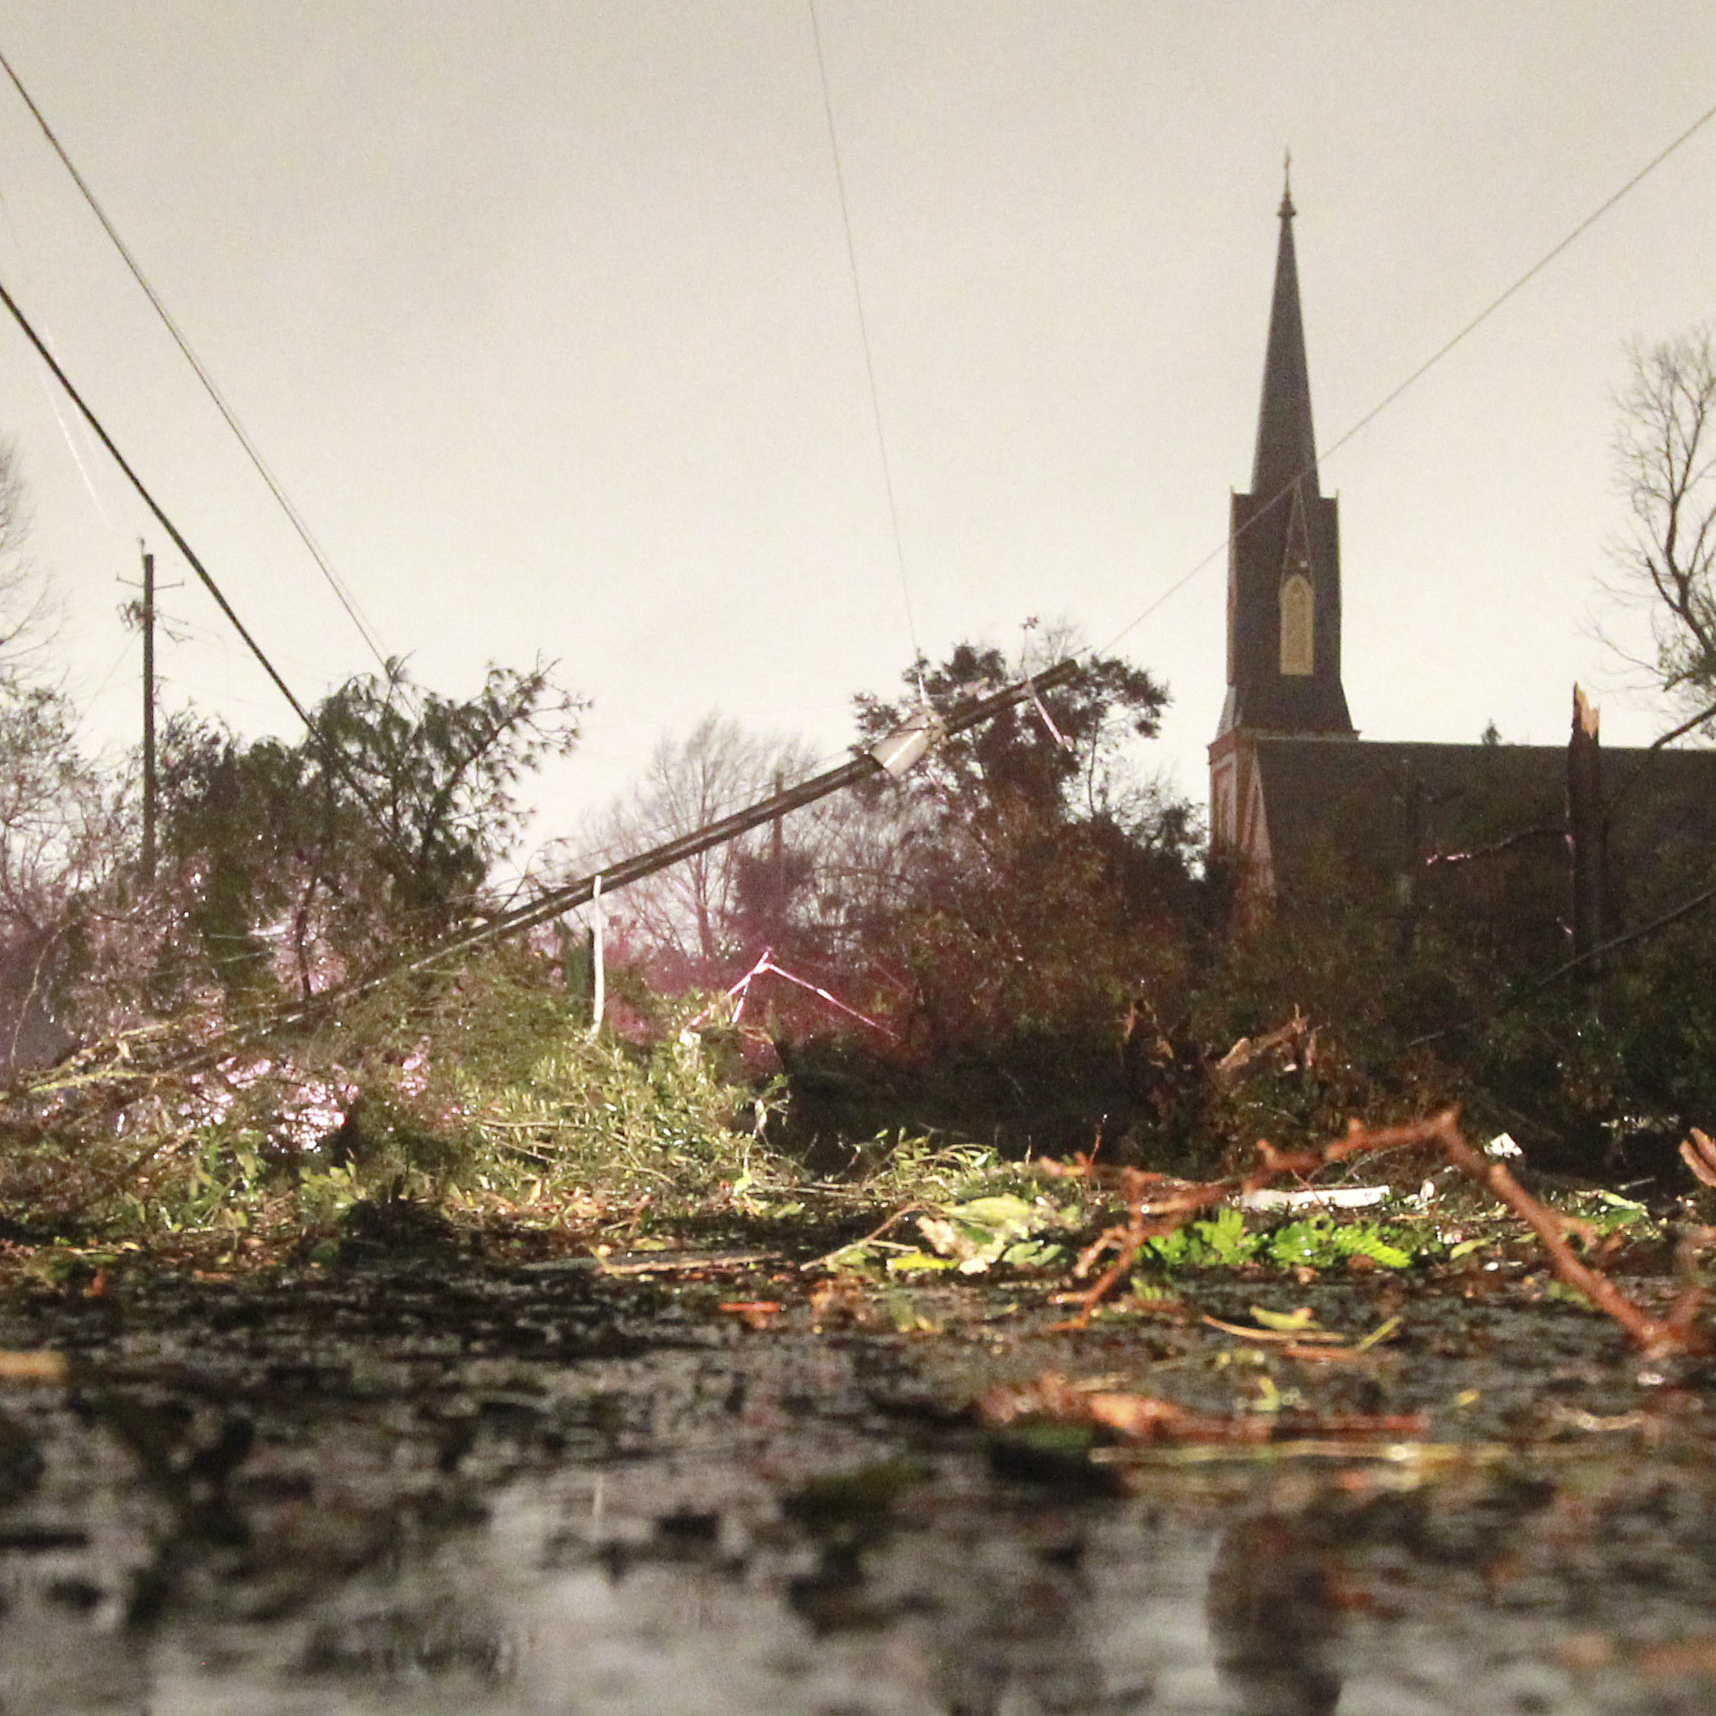 After the storm in Mobile:  Downed trees and power lines on Christmas Day.